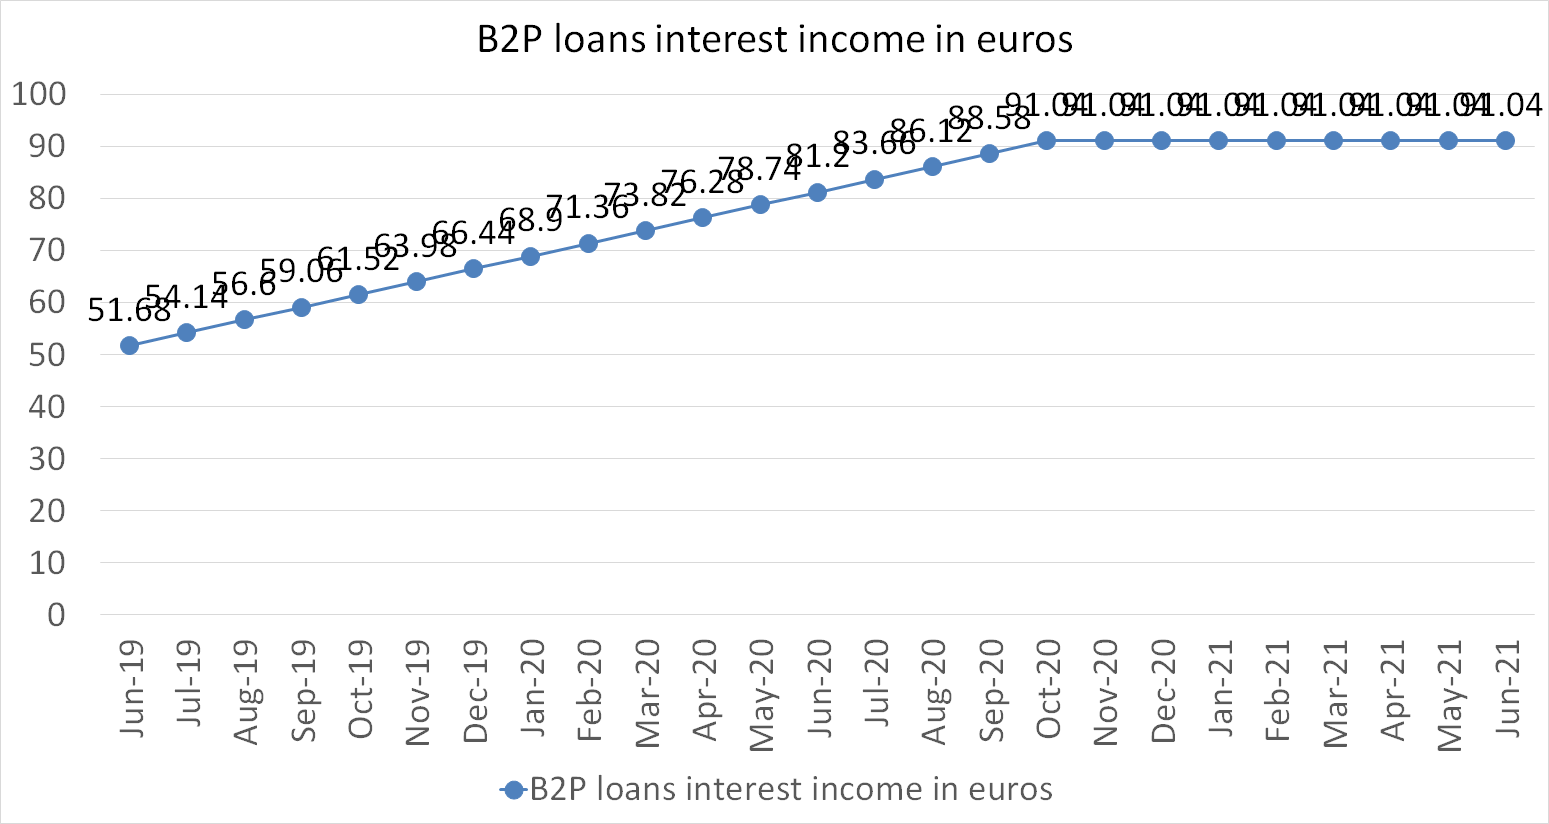 B2P loans interest income in june 2021